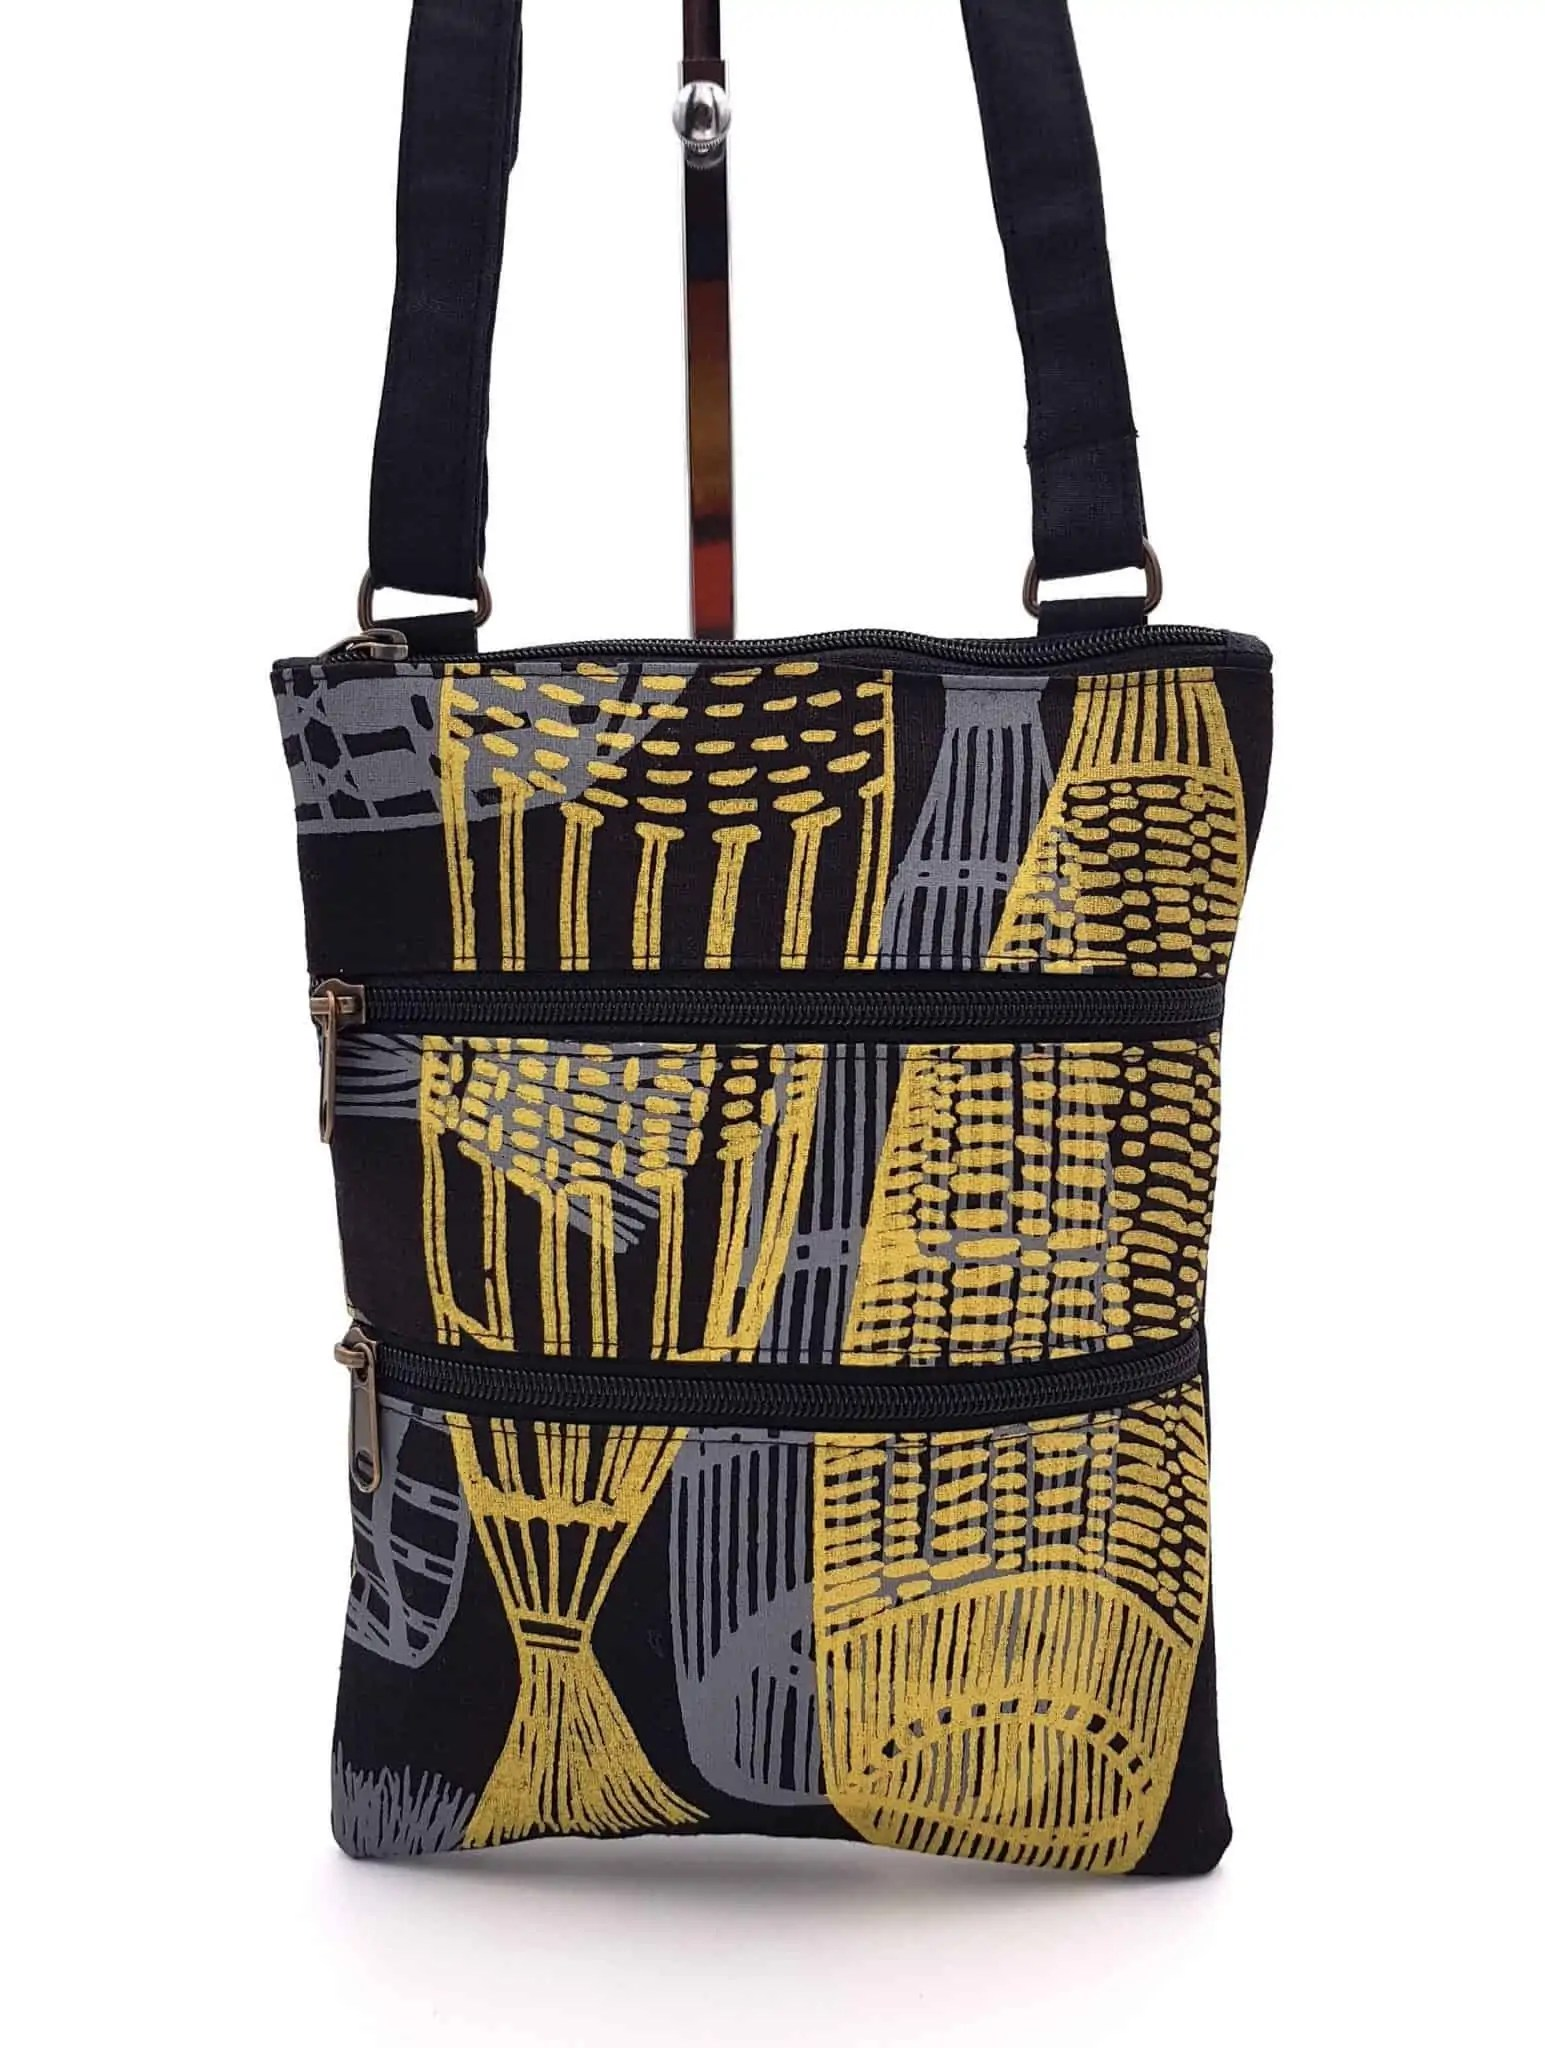 aboriginal fish bag 1 scaled Snazzy Trips